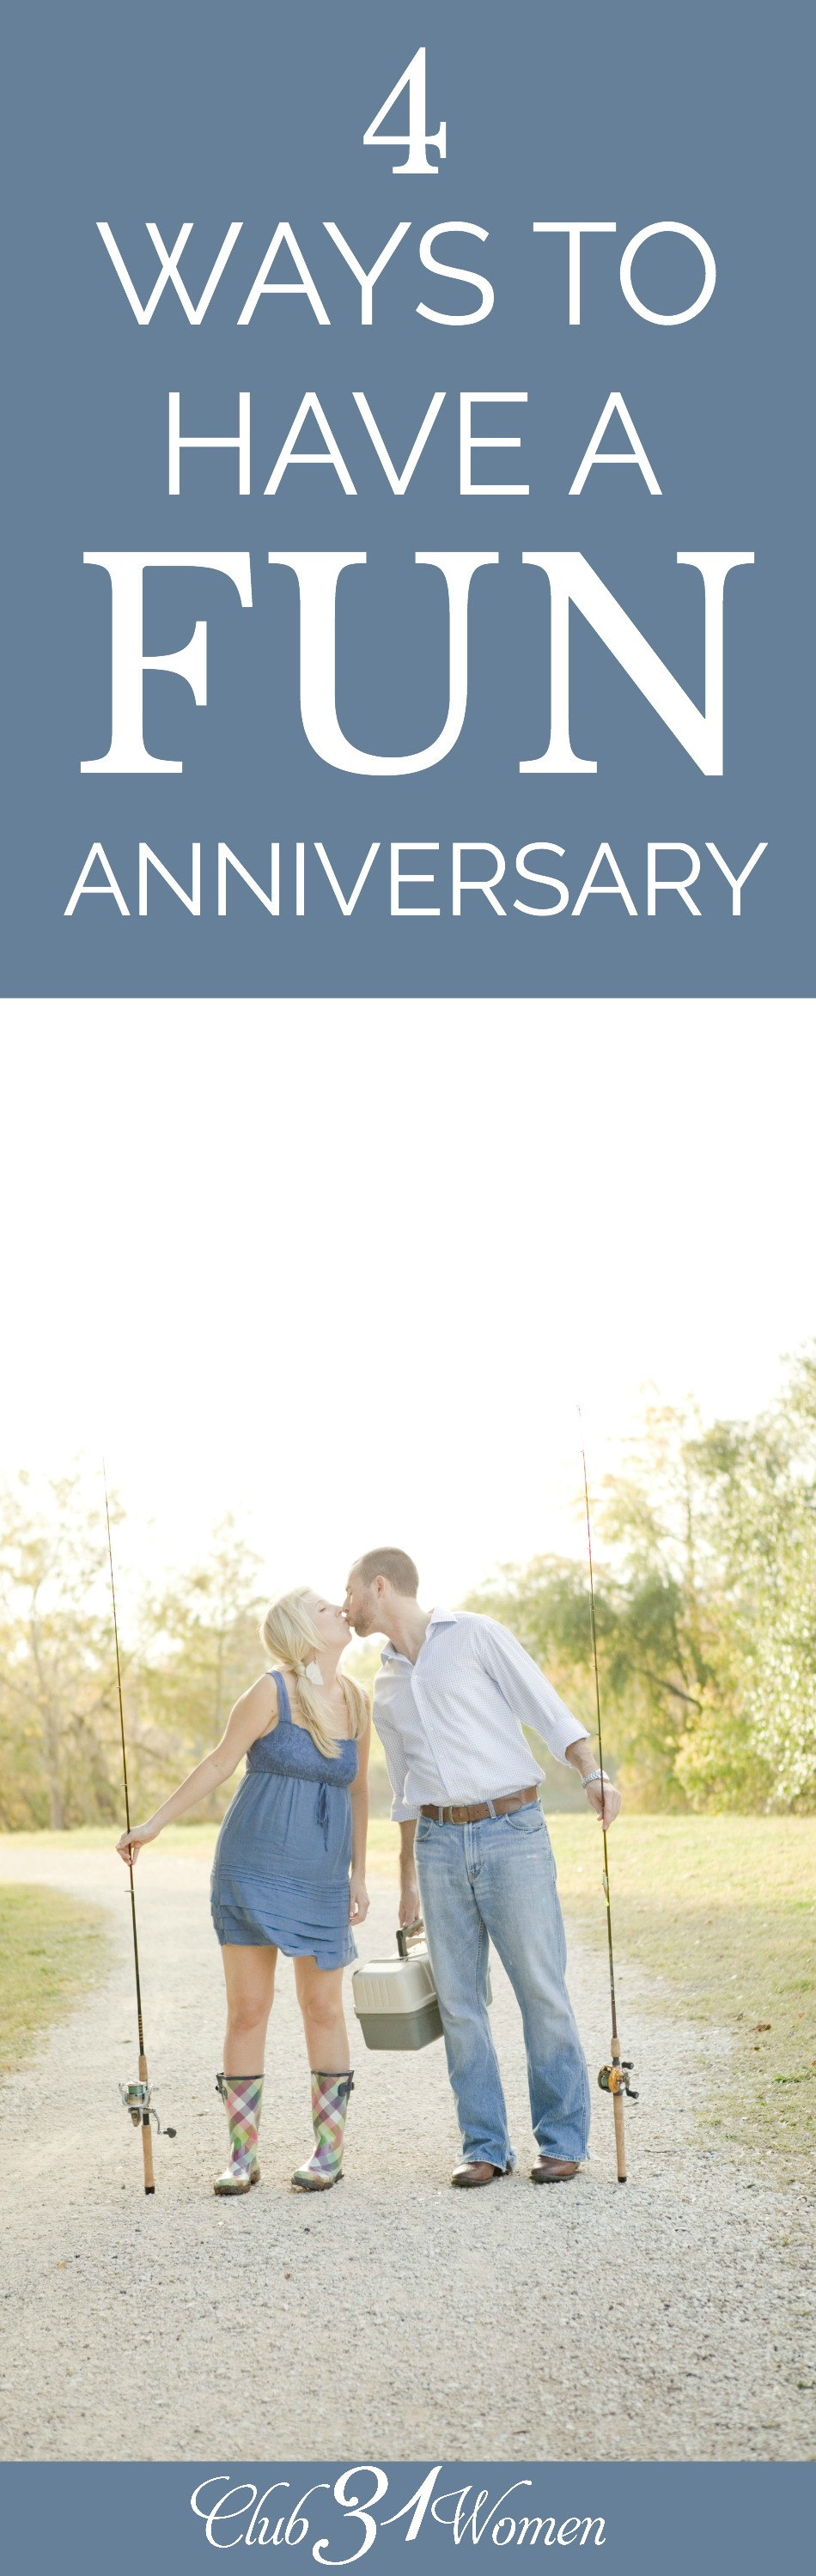 Having a fun anniversary doesn't need to be expensive or complicated. With a little creativity and planning, you can make the next celebration your best yet! via @Club31Women